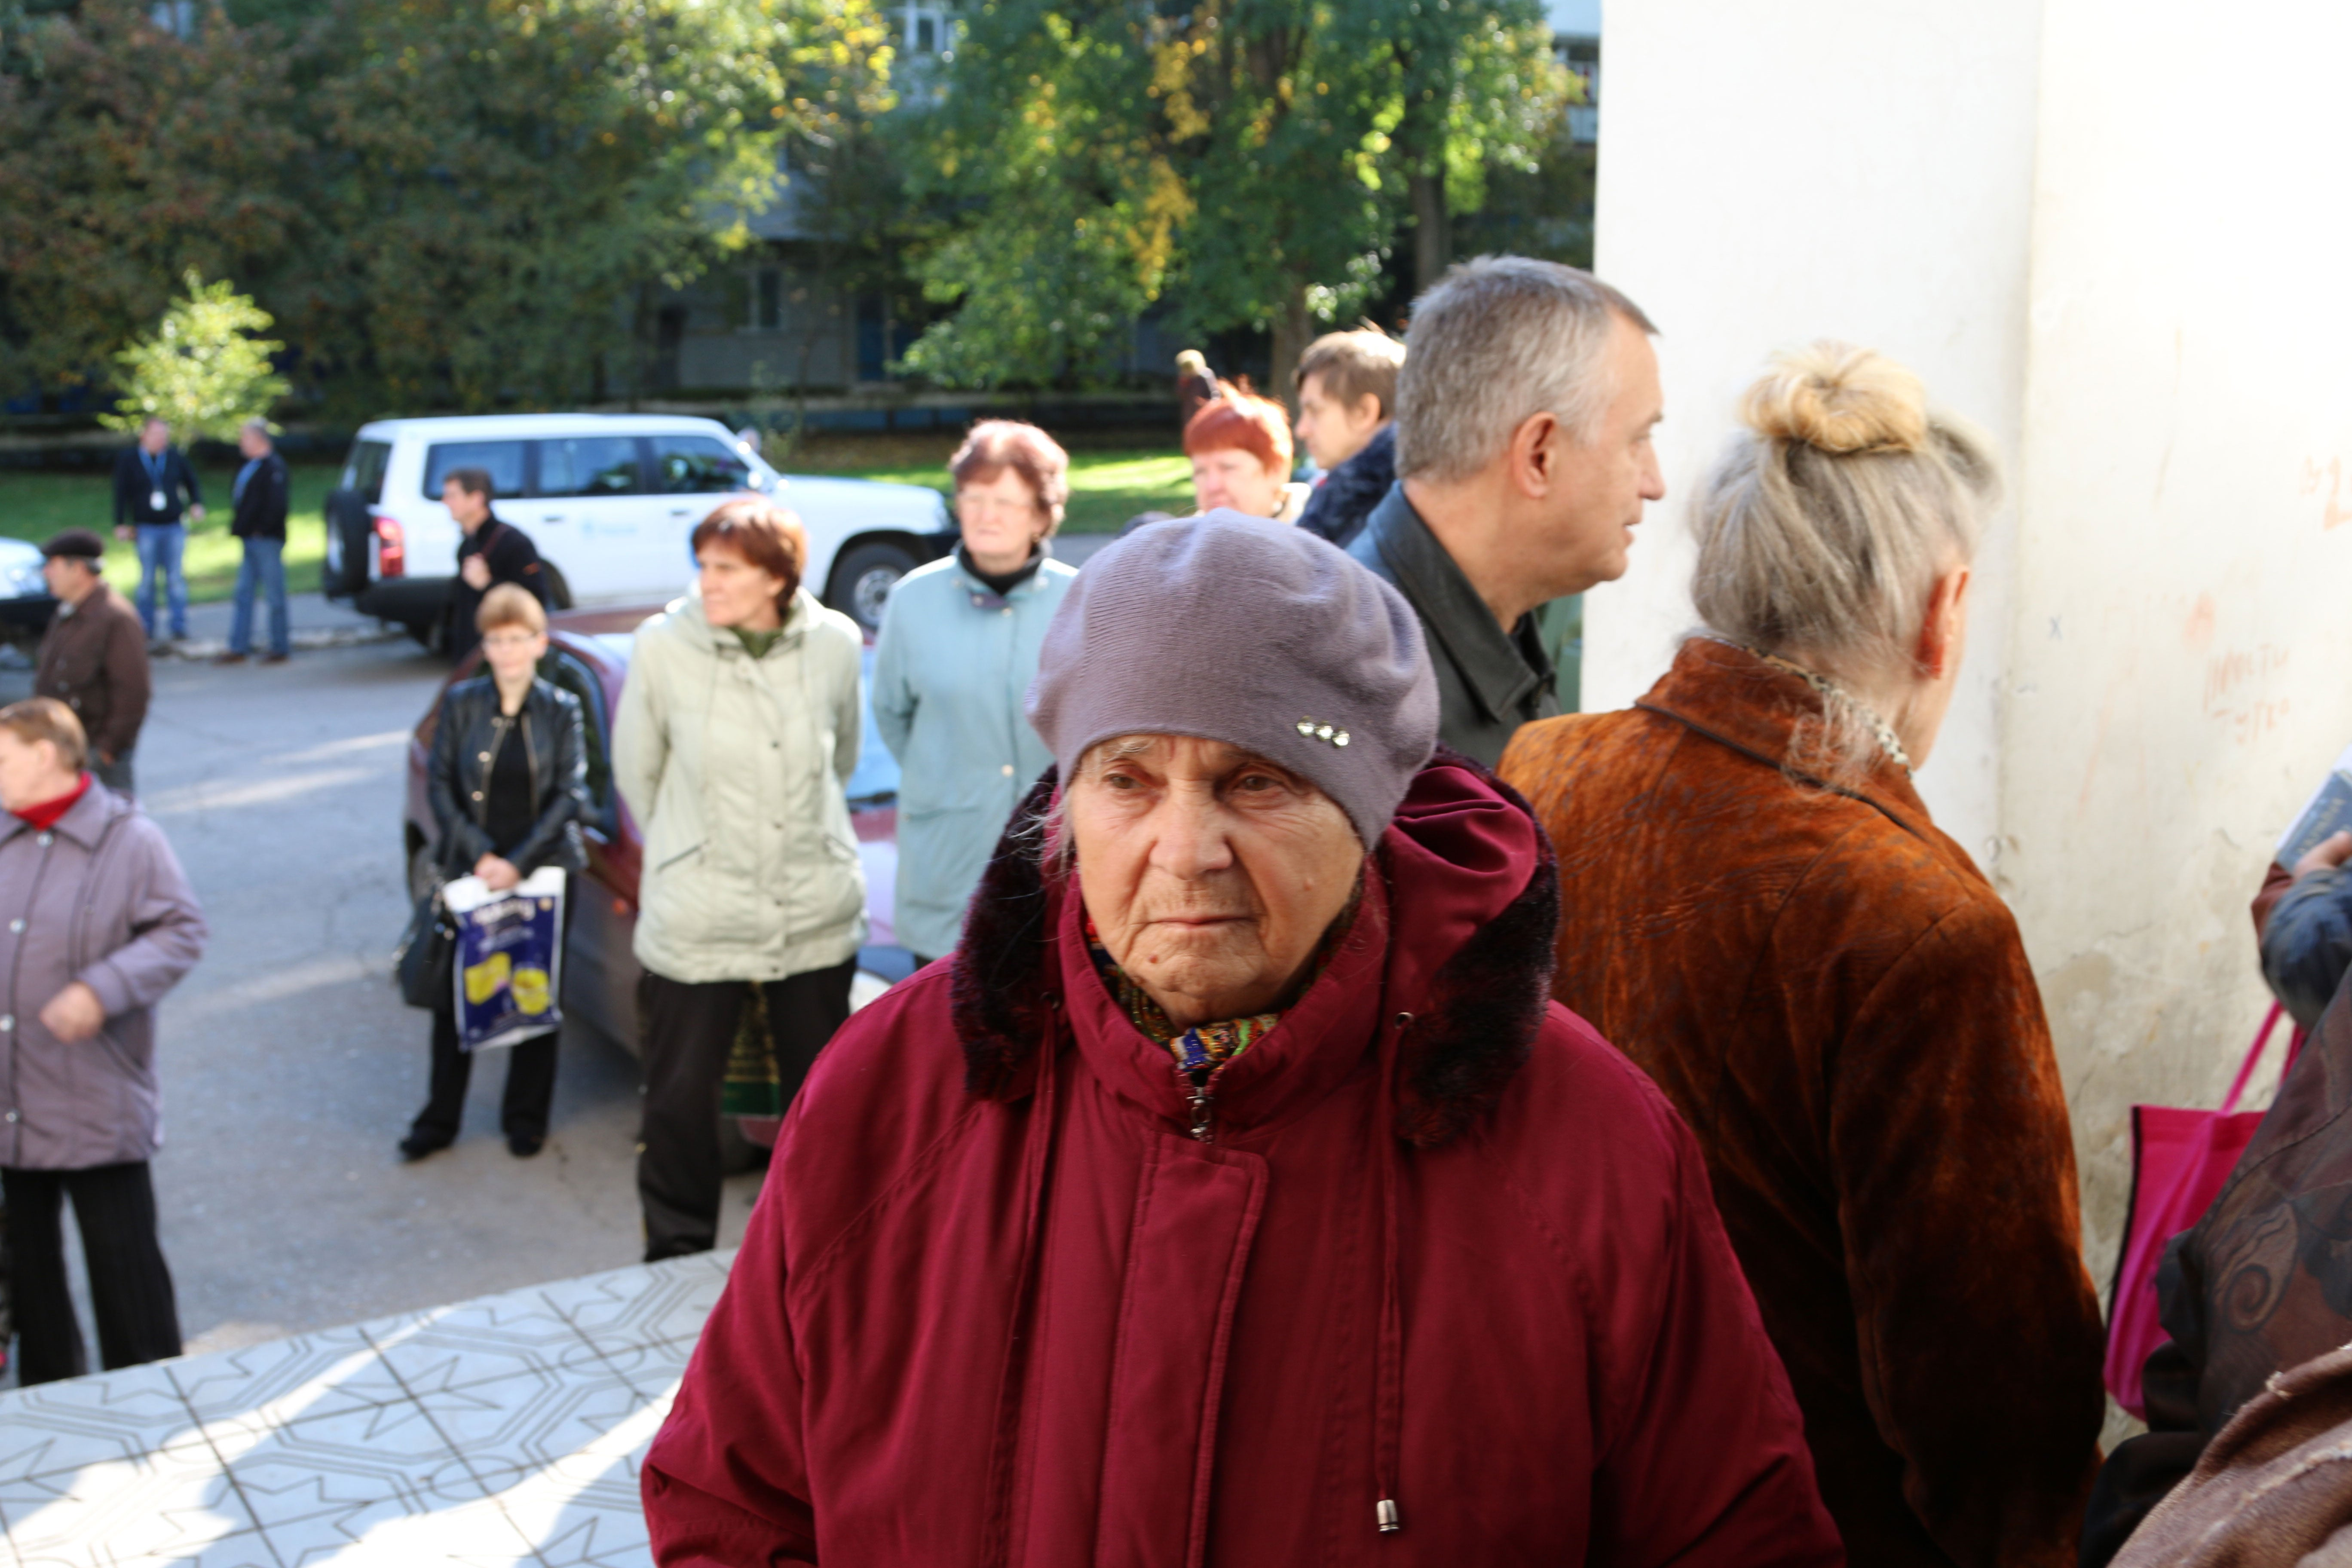 Internally displaced persons line up at a United Nations World Food Program distribution center in east Ukraine. (Photos: Nolan Peterson/The Daily Signal)